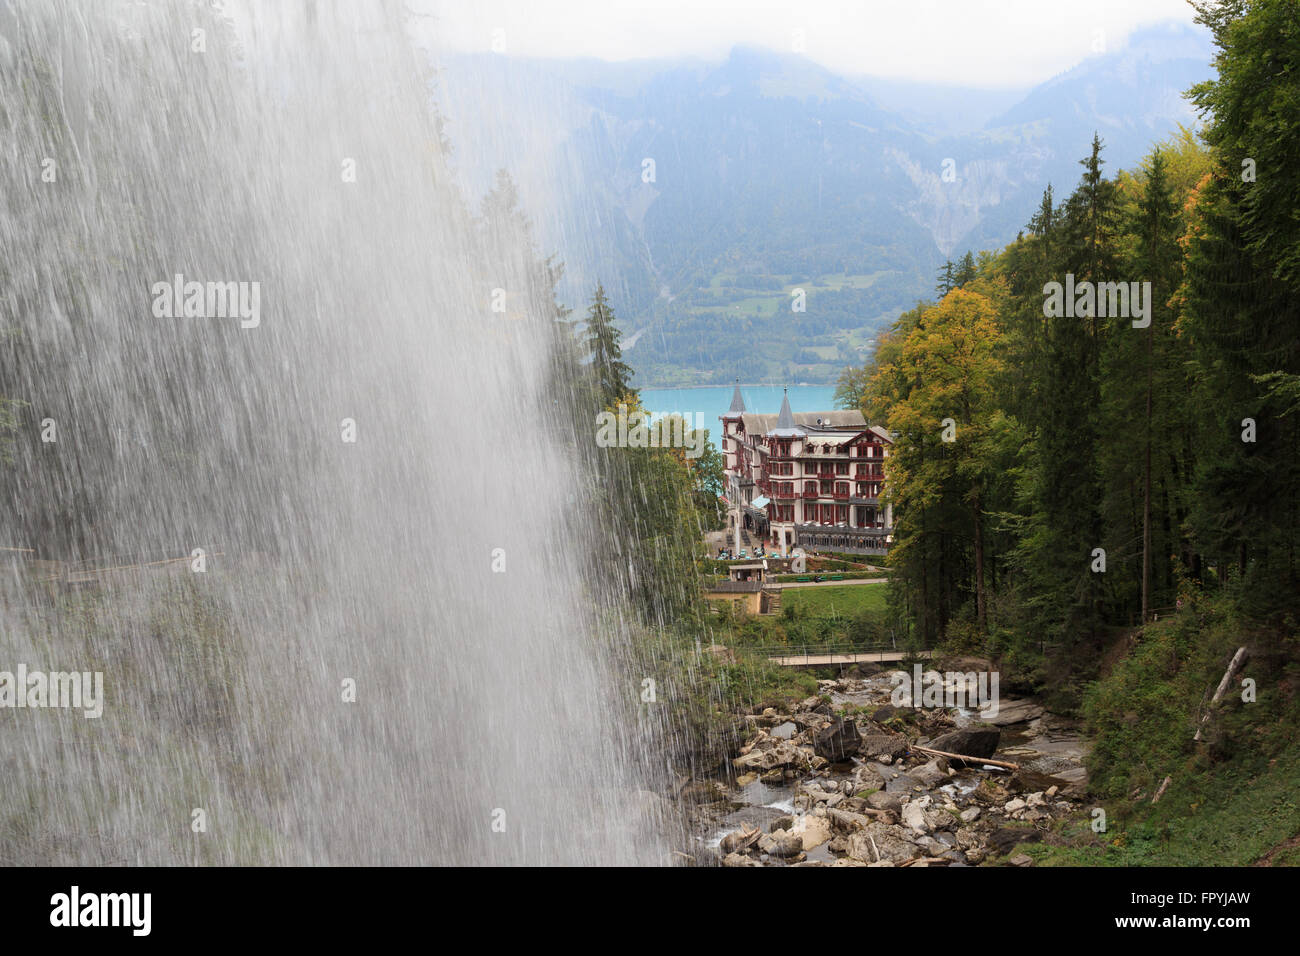 A photograph of the Grand Hotel Giessbach as seen from behind the Giessbach Falls on Lake Brienz in Switzerland. Stock Photo